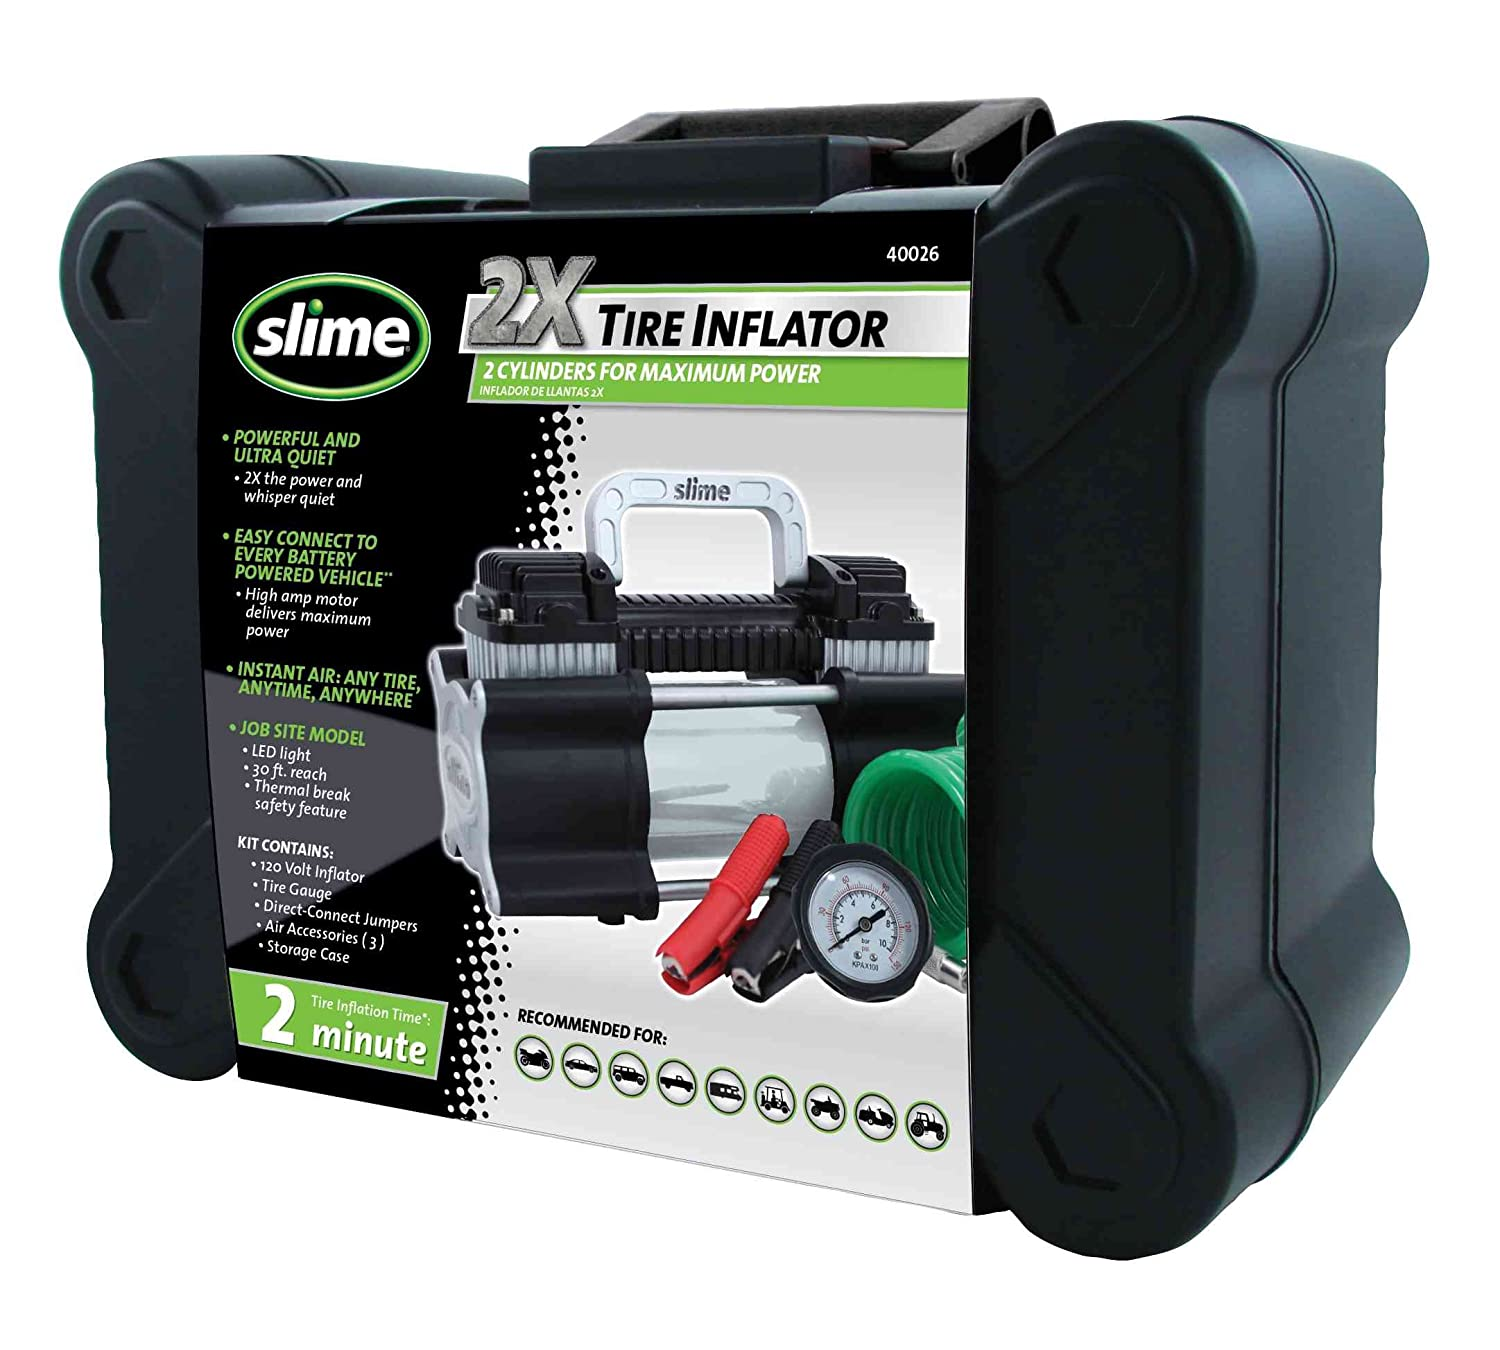 7. Slime 40026 Heavy Duty Tire Inflator